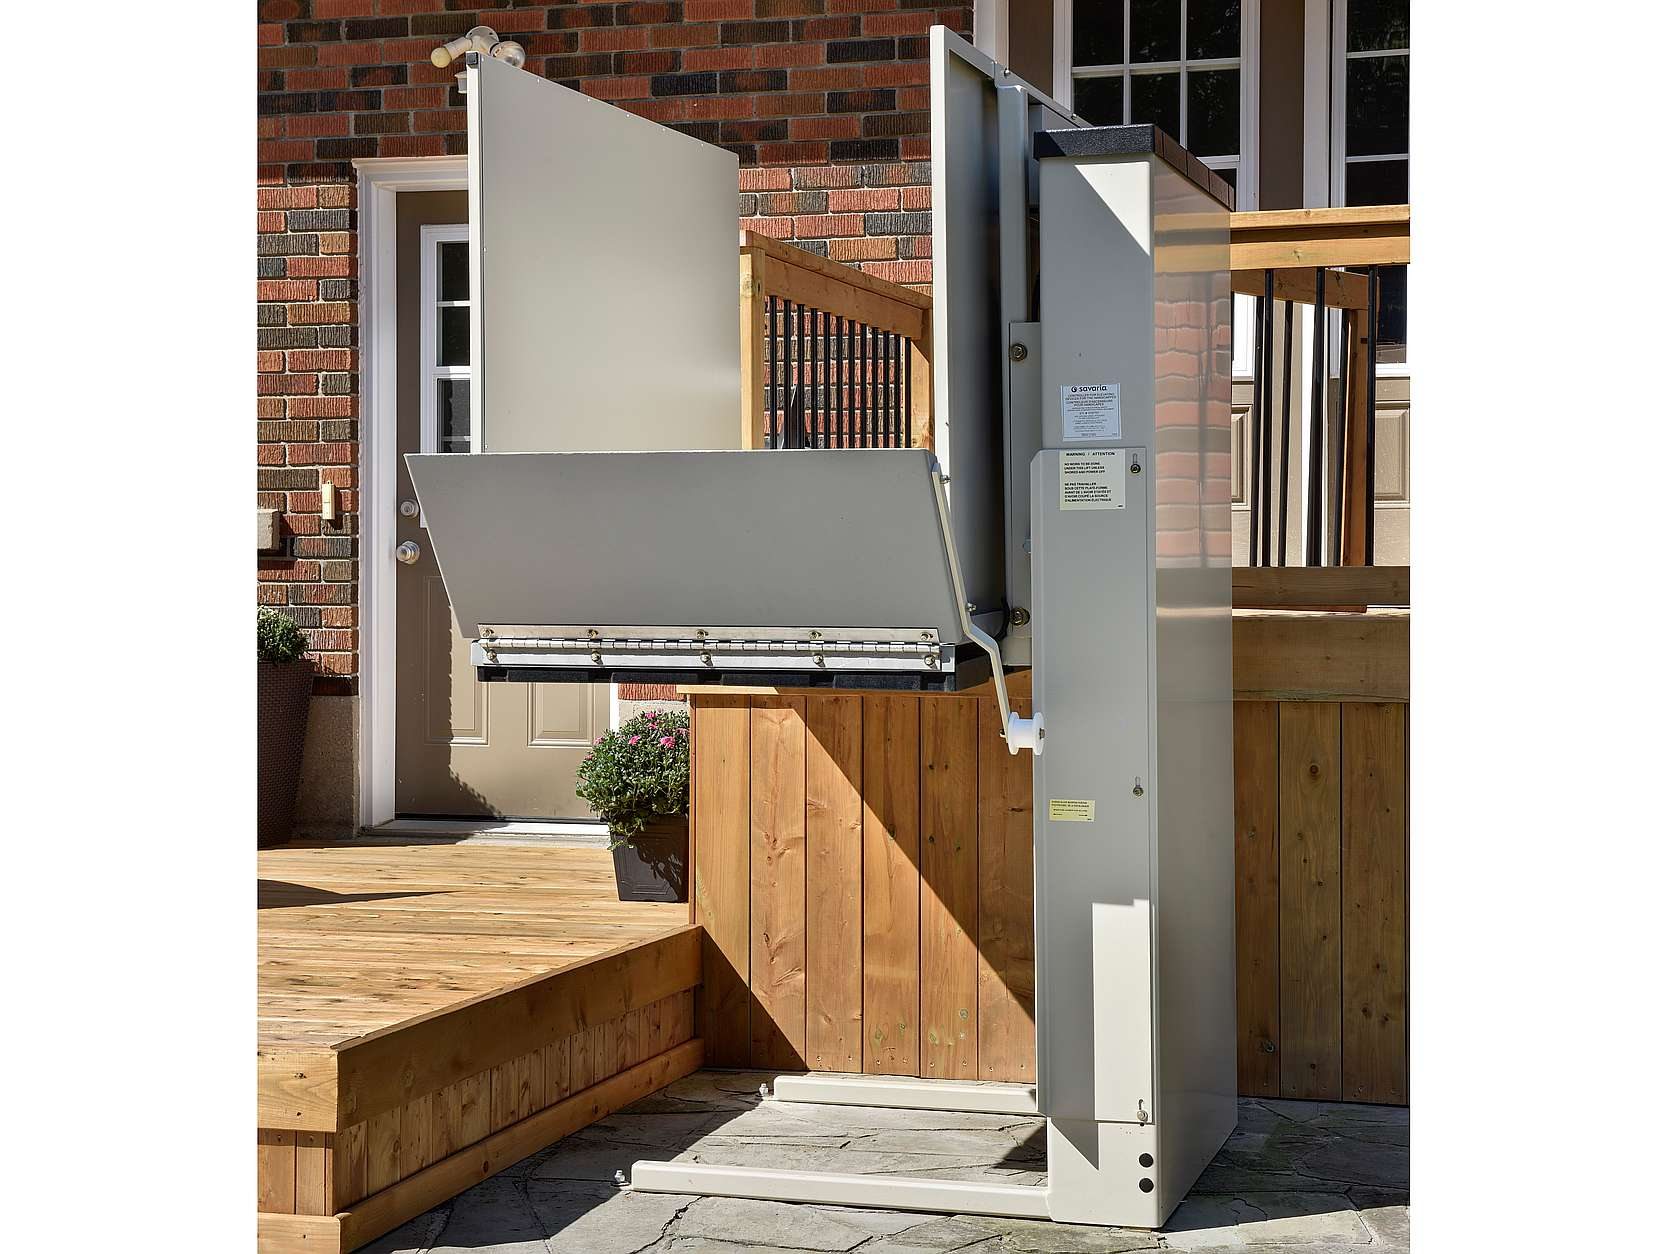 Elevex Vertical platform lift, wheelchair lift